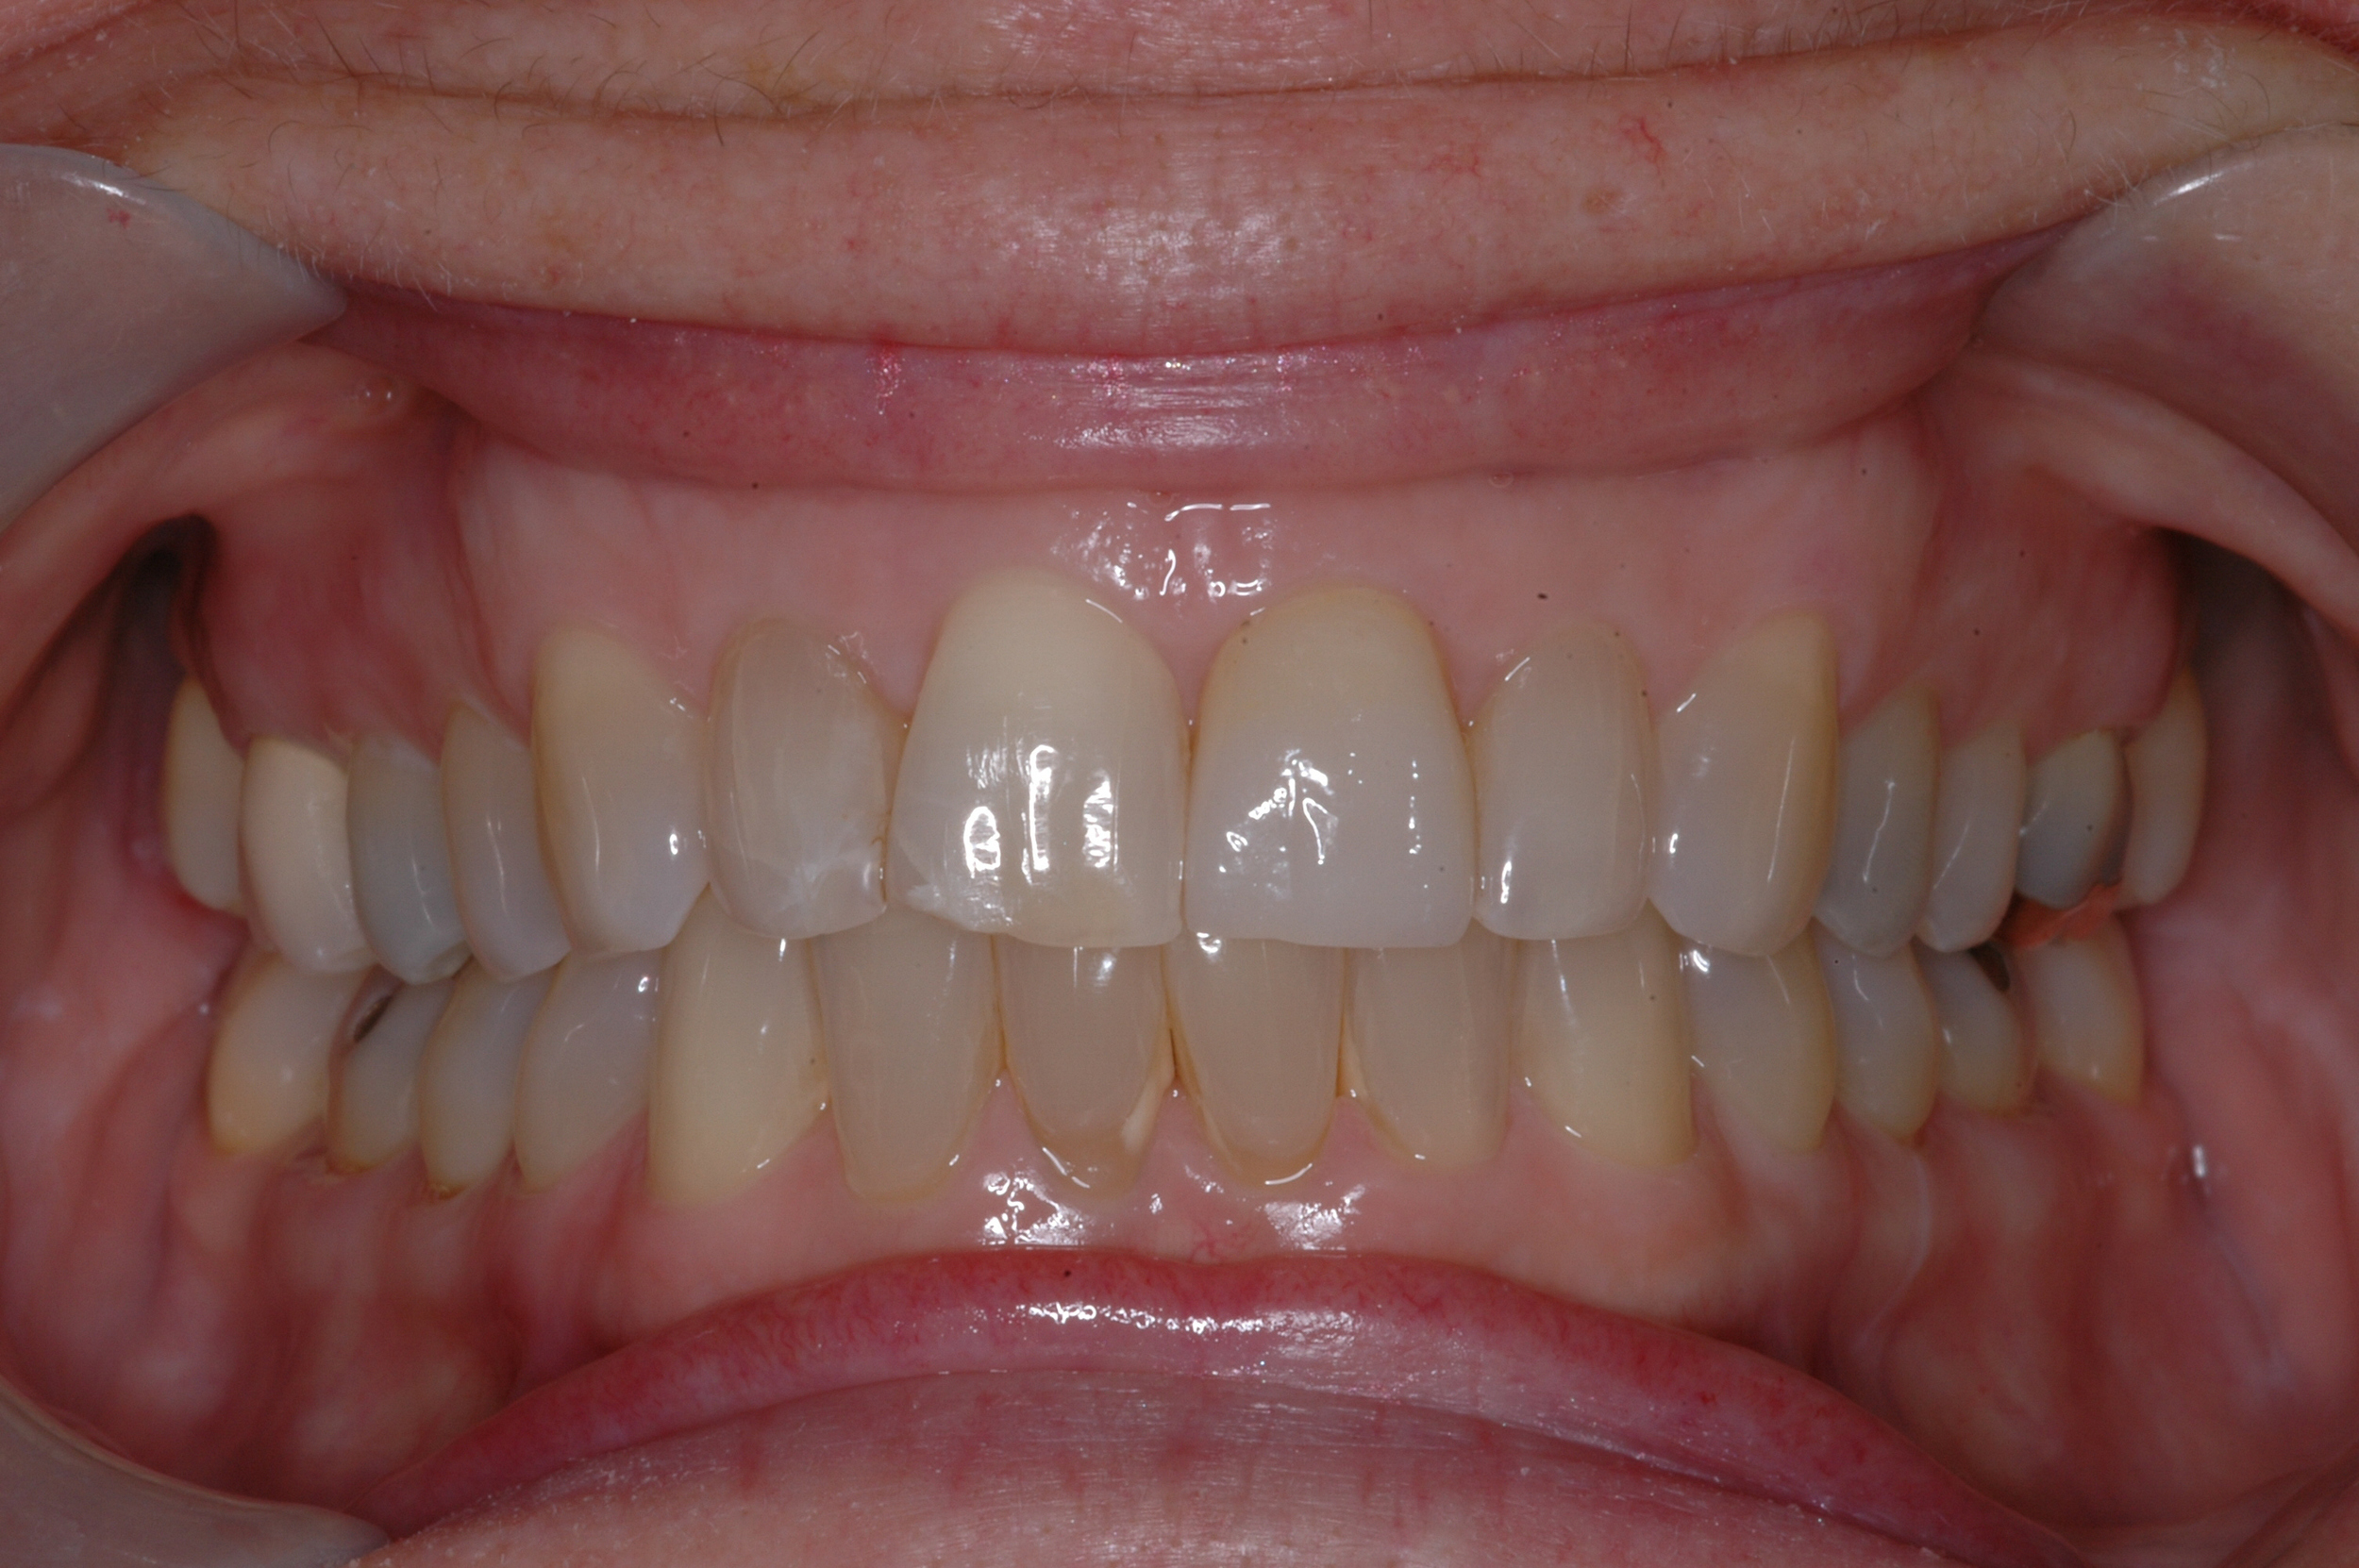 This is the final crown.  Natural looking restorations that blend with natural teeth are attainable.